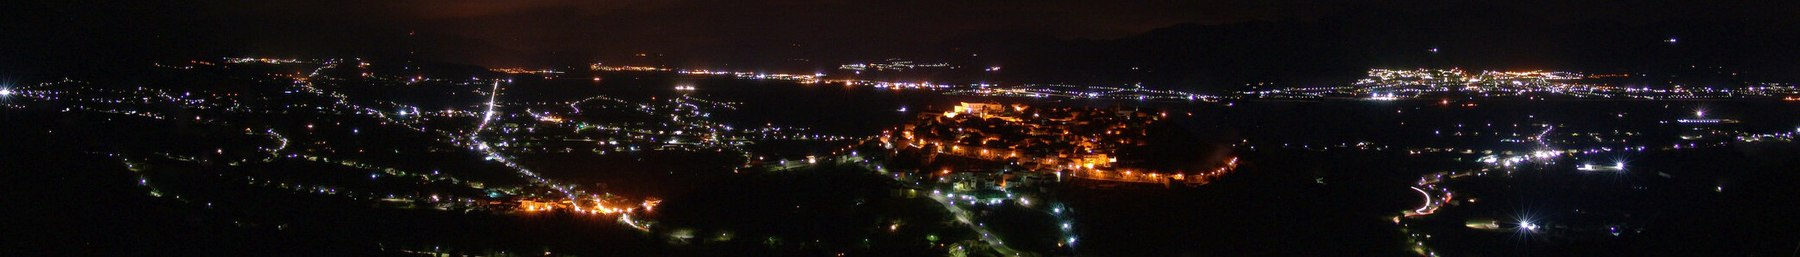 WV banner Salerno province Diano Valley at night.jpg